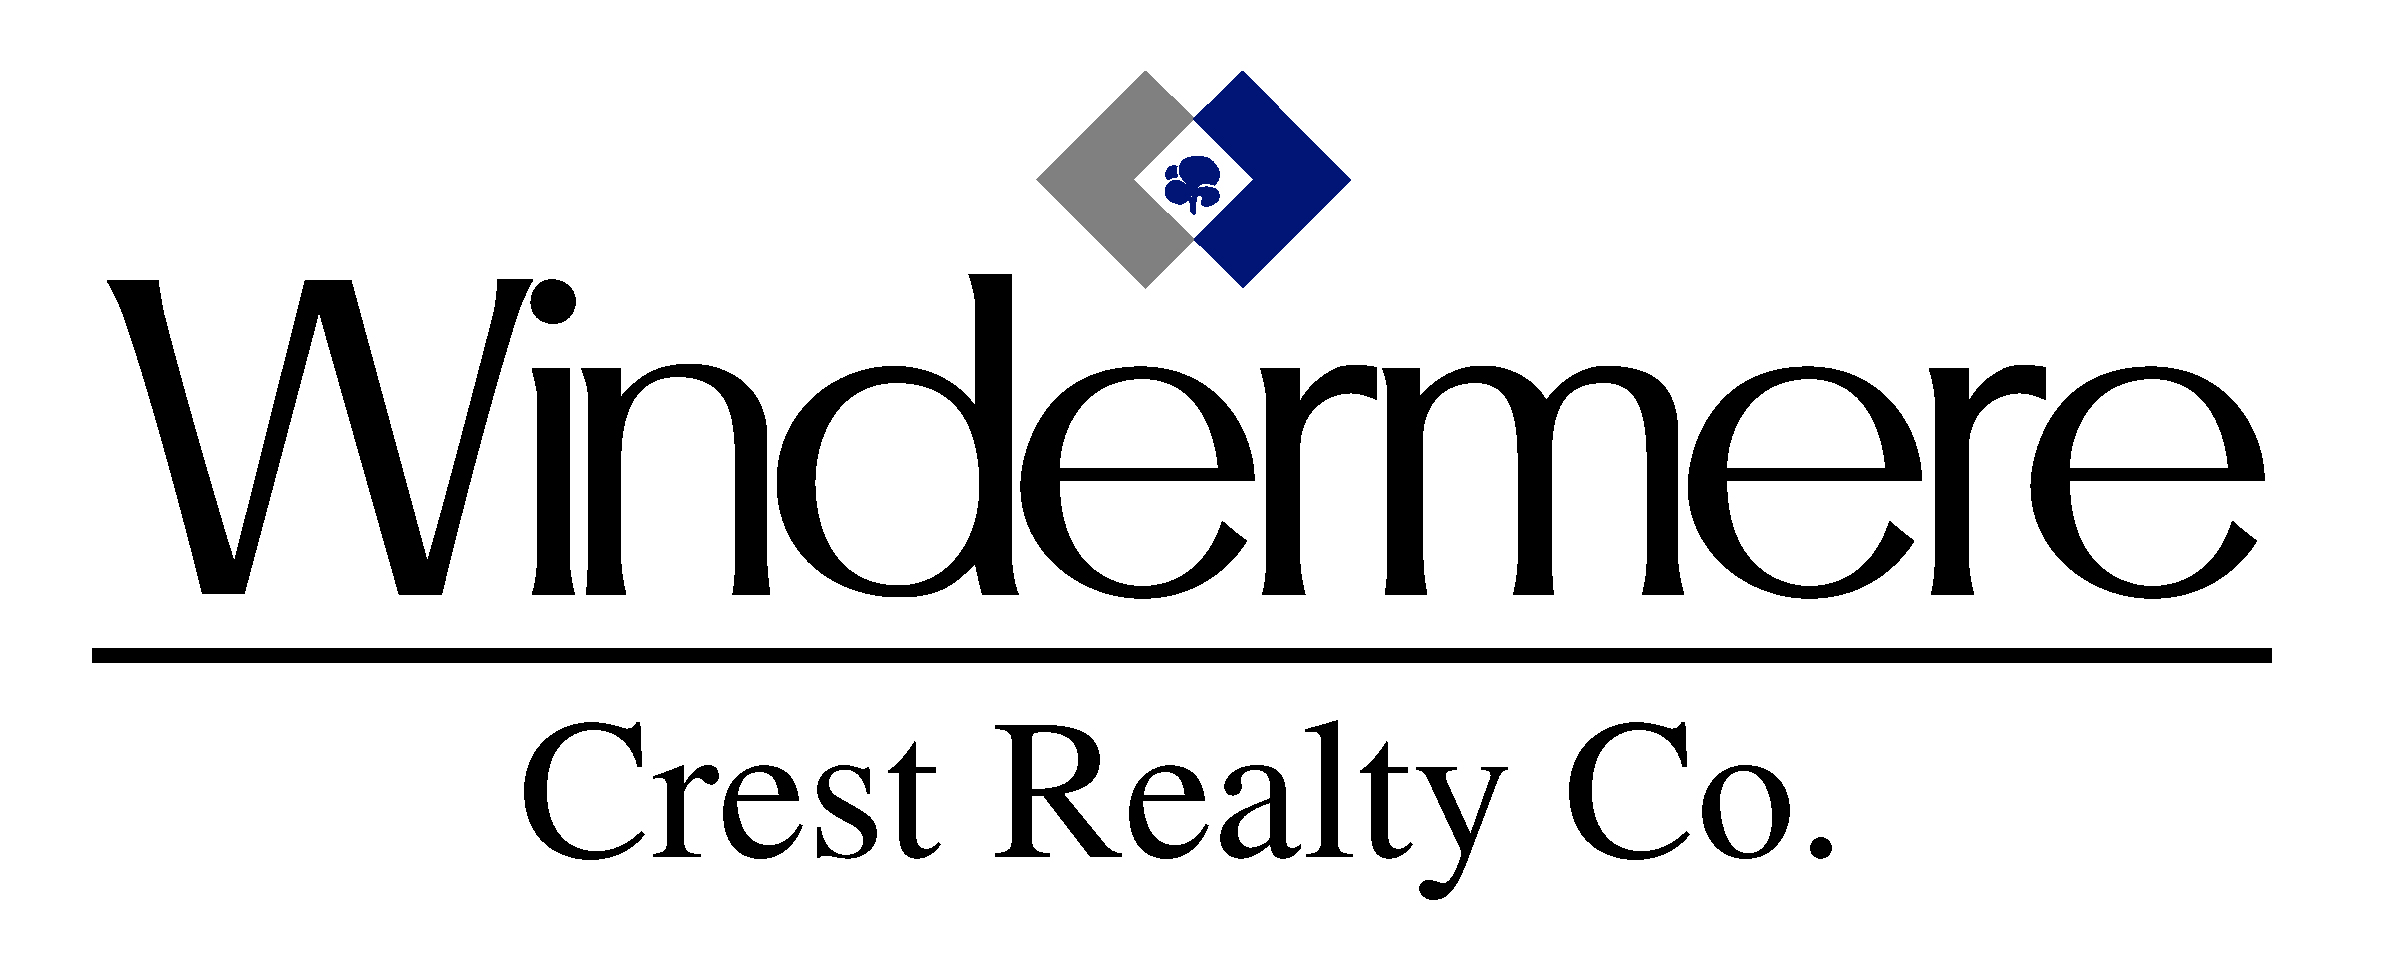 Sheri Ognianov - Real Estate Broker - Windermere Crest Realty Co. | Camas, WA, 98607 | +1 (503) 267-1397